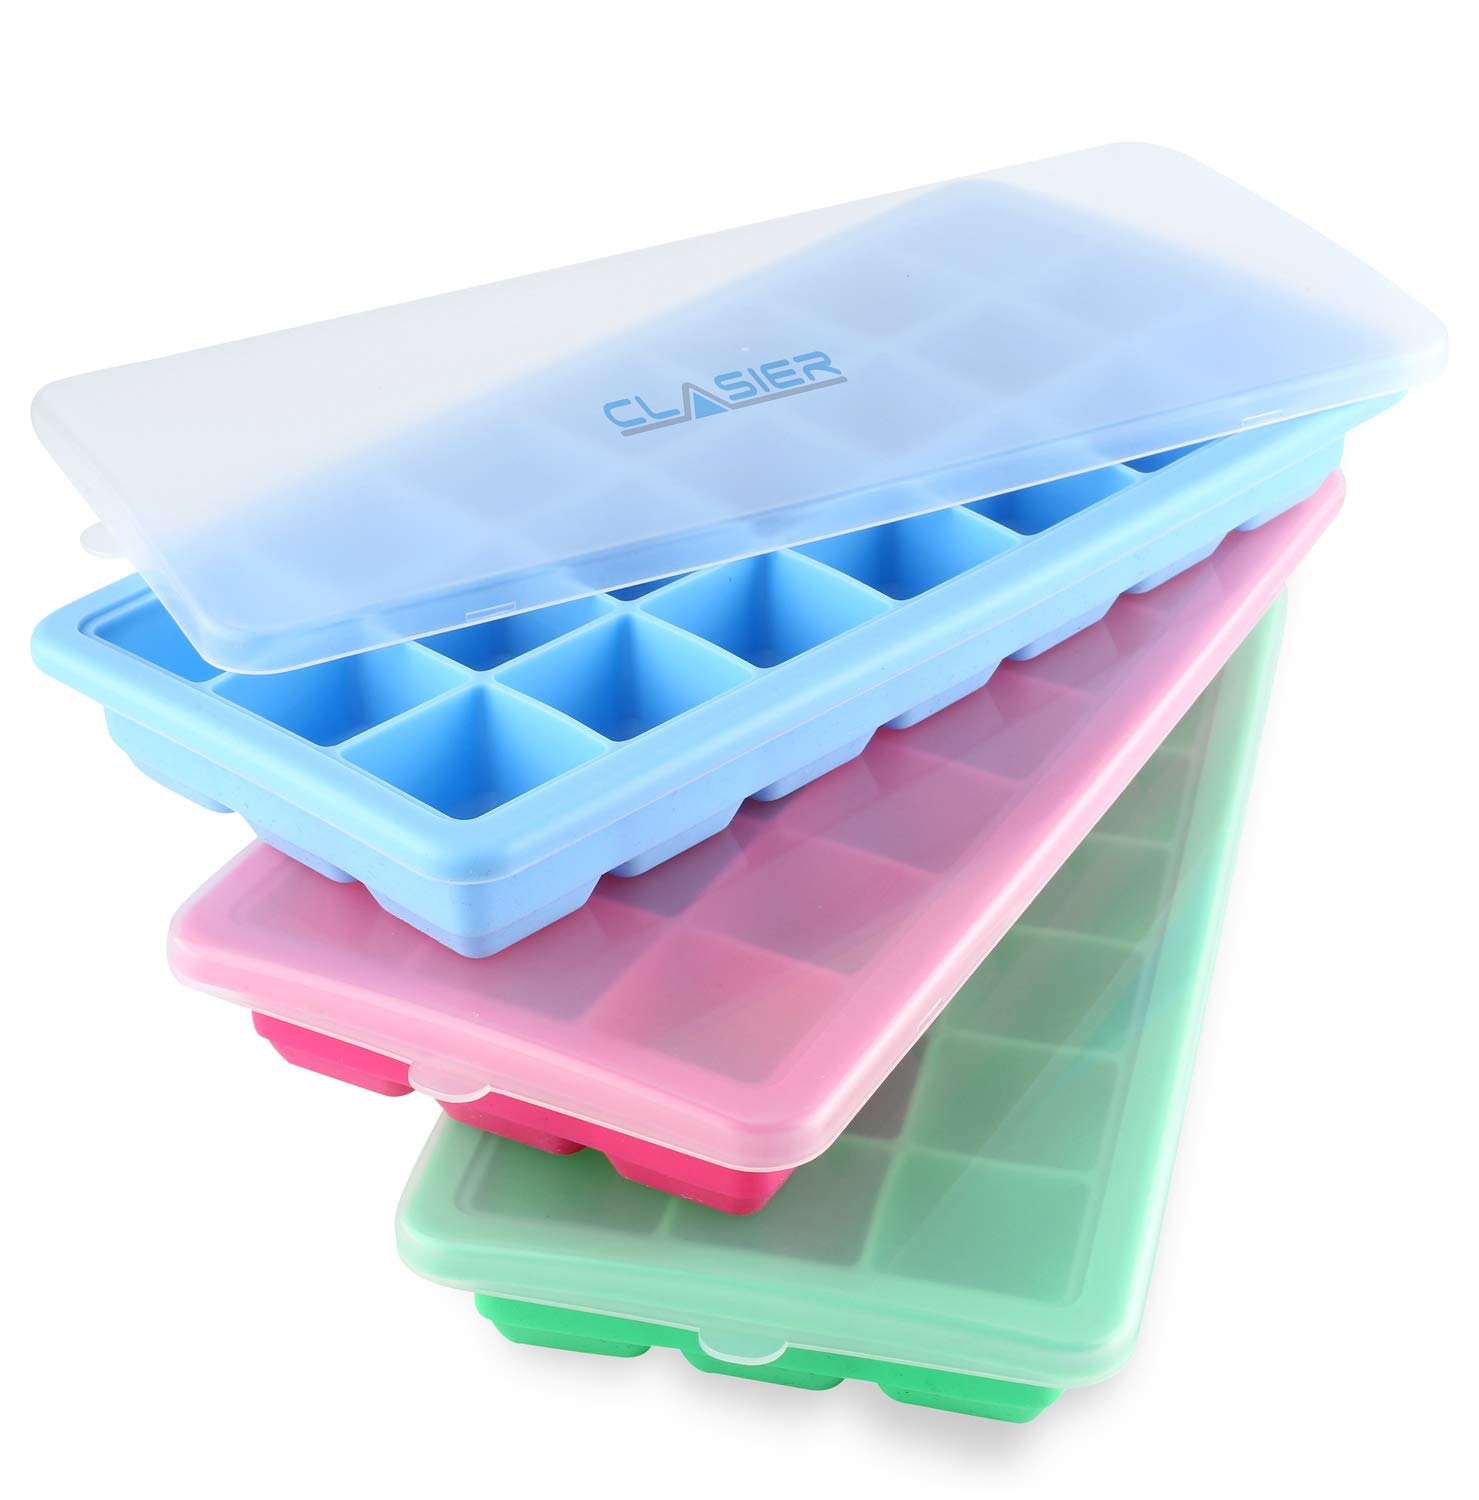 Amazoncom Ice Cube Trays With Lids Silicone Bpa Free Ice Molds